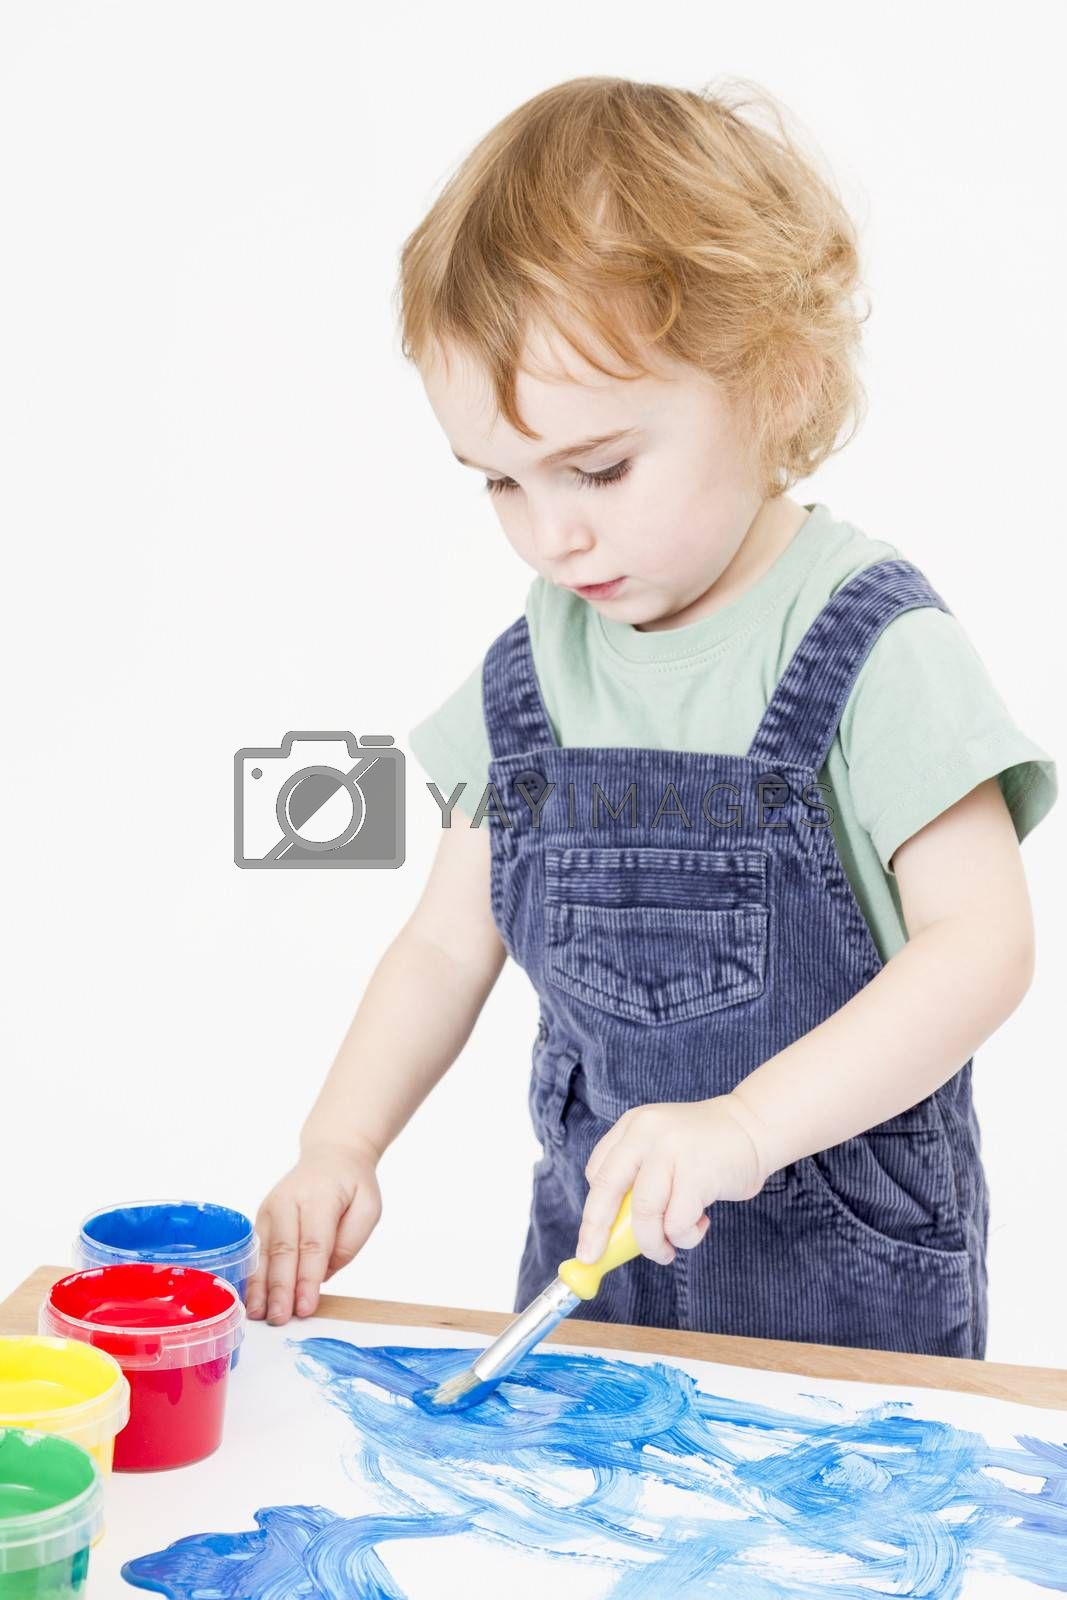 cute child making picture with brush and paint in light background